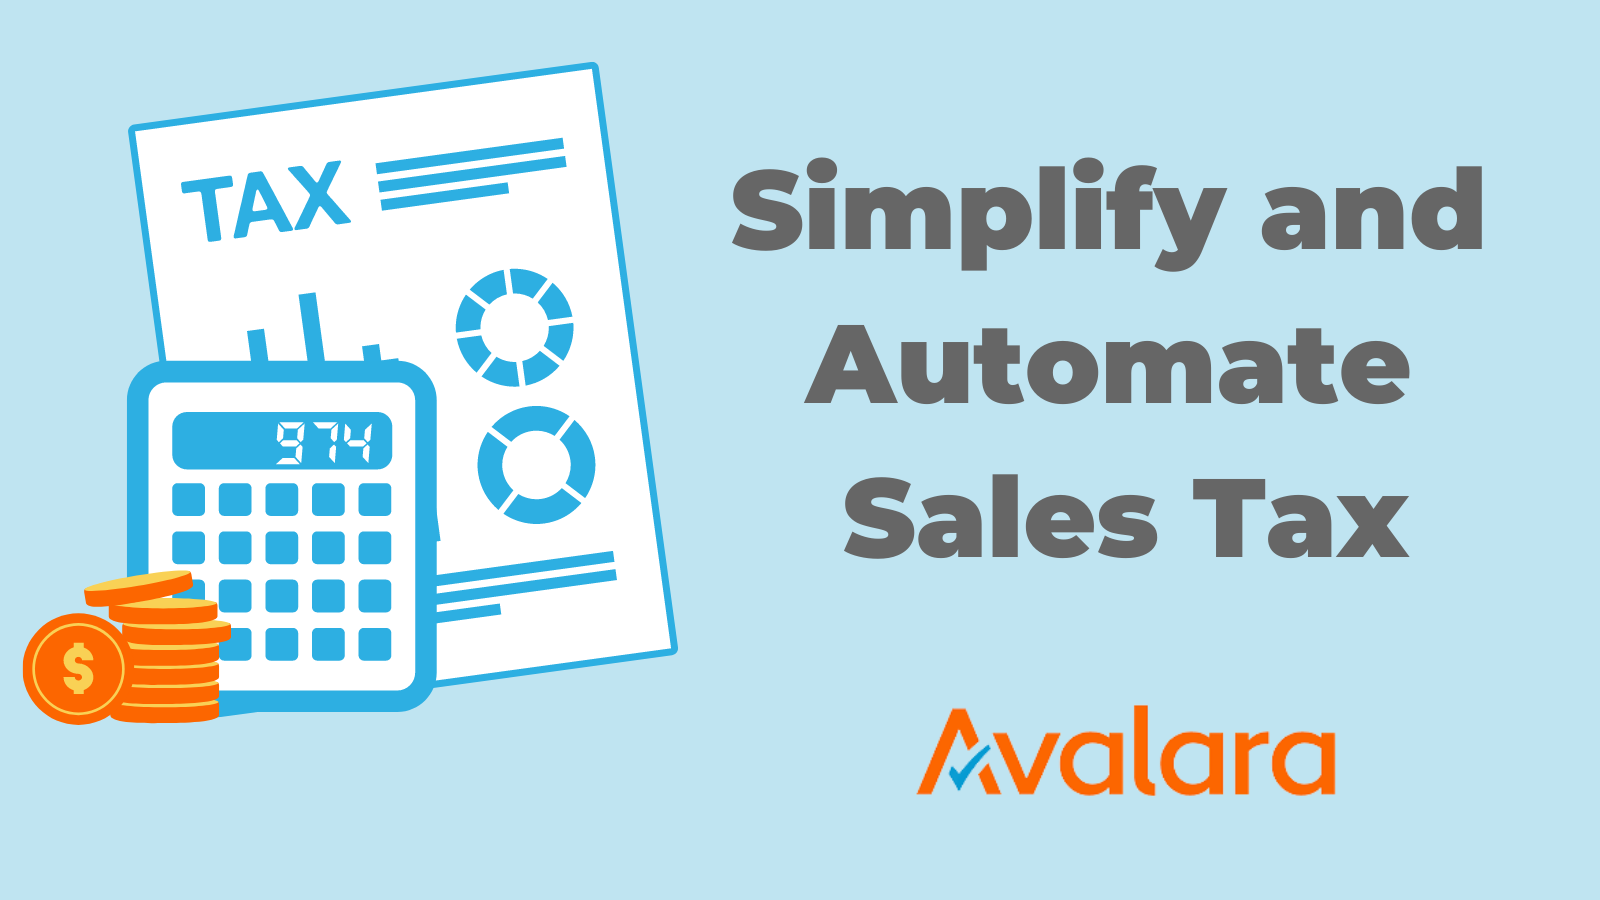 Simplify and Automate Sales Tax